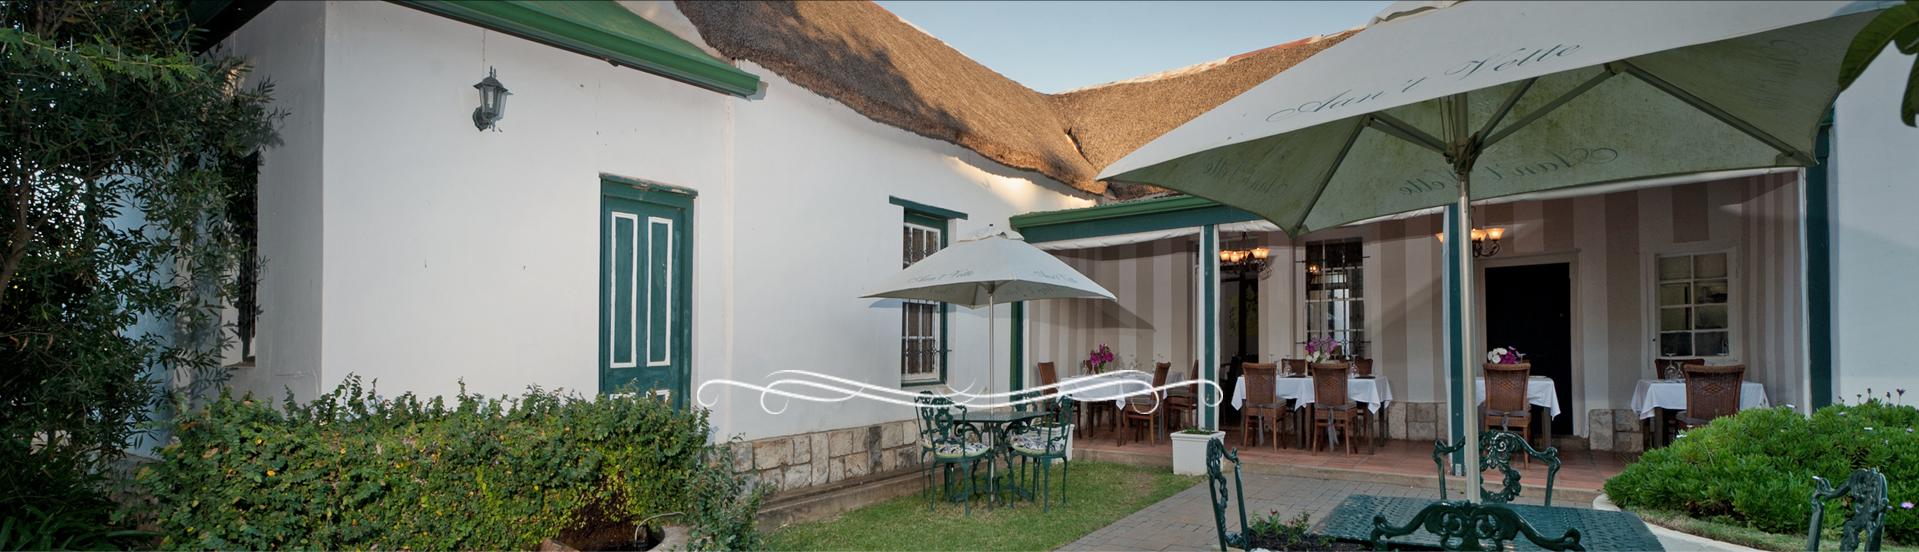 Dedoornkraal Riversdale Accommodation - Contact Us